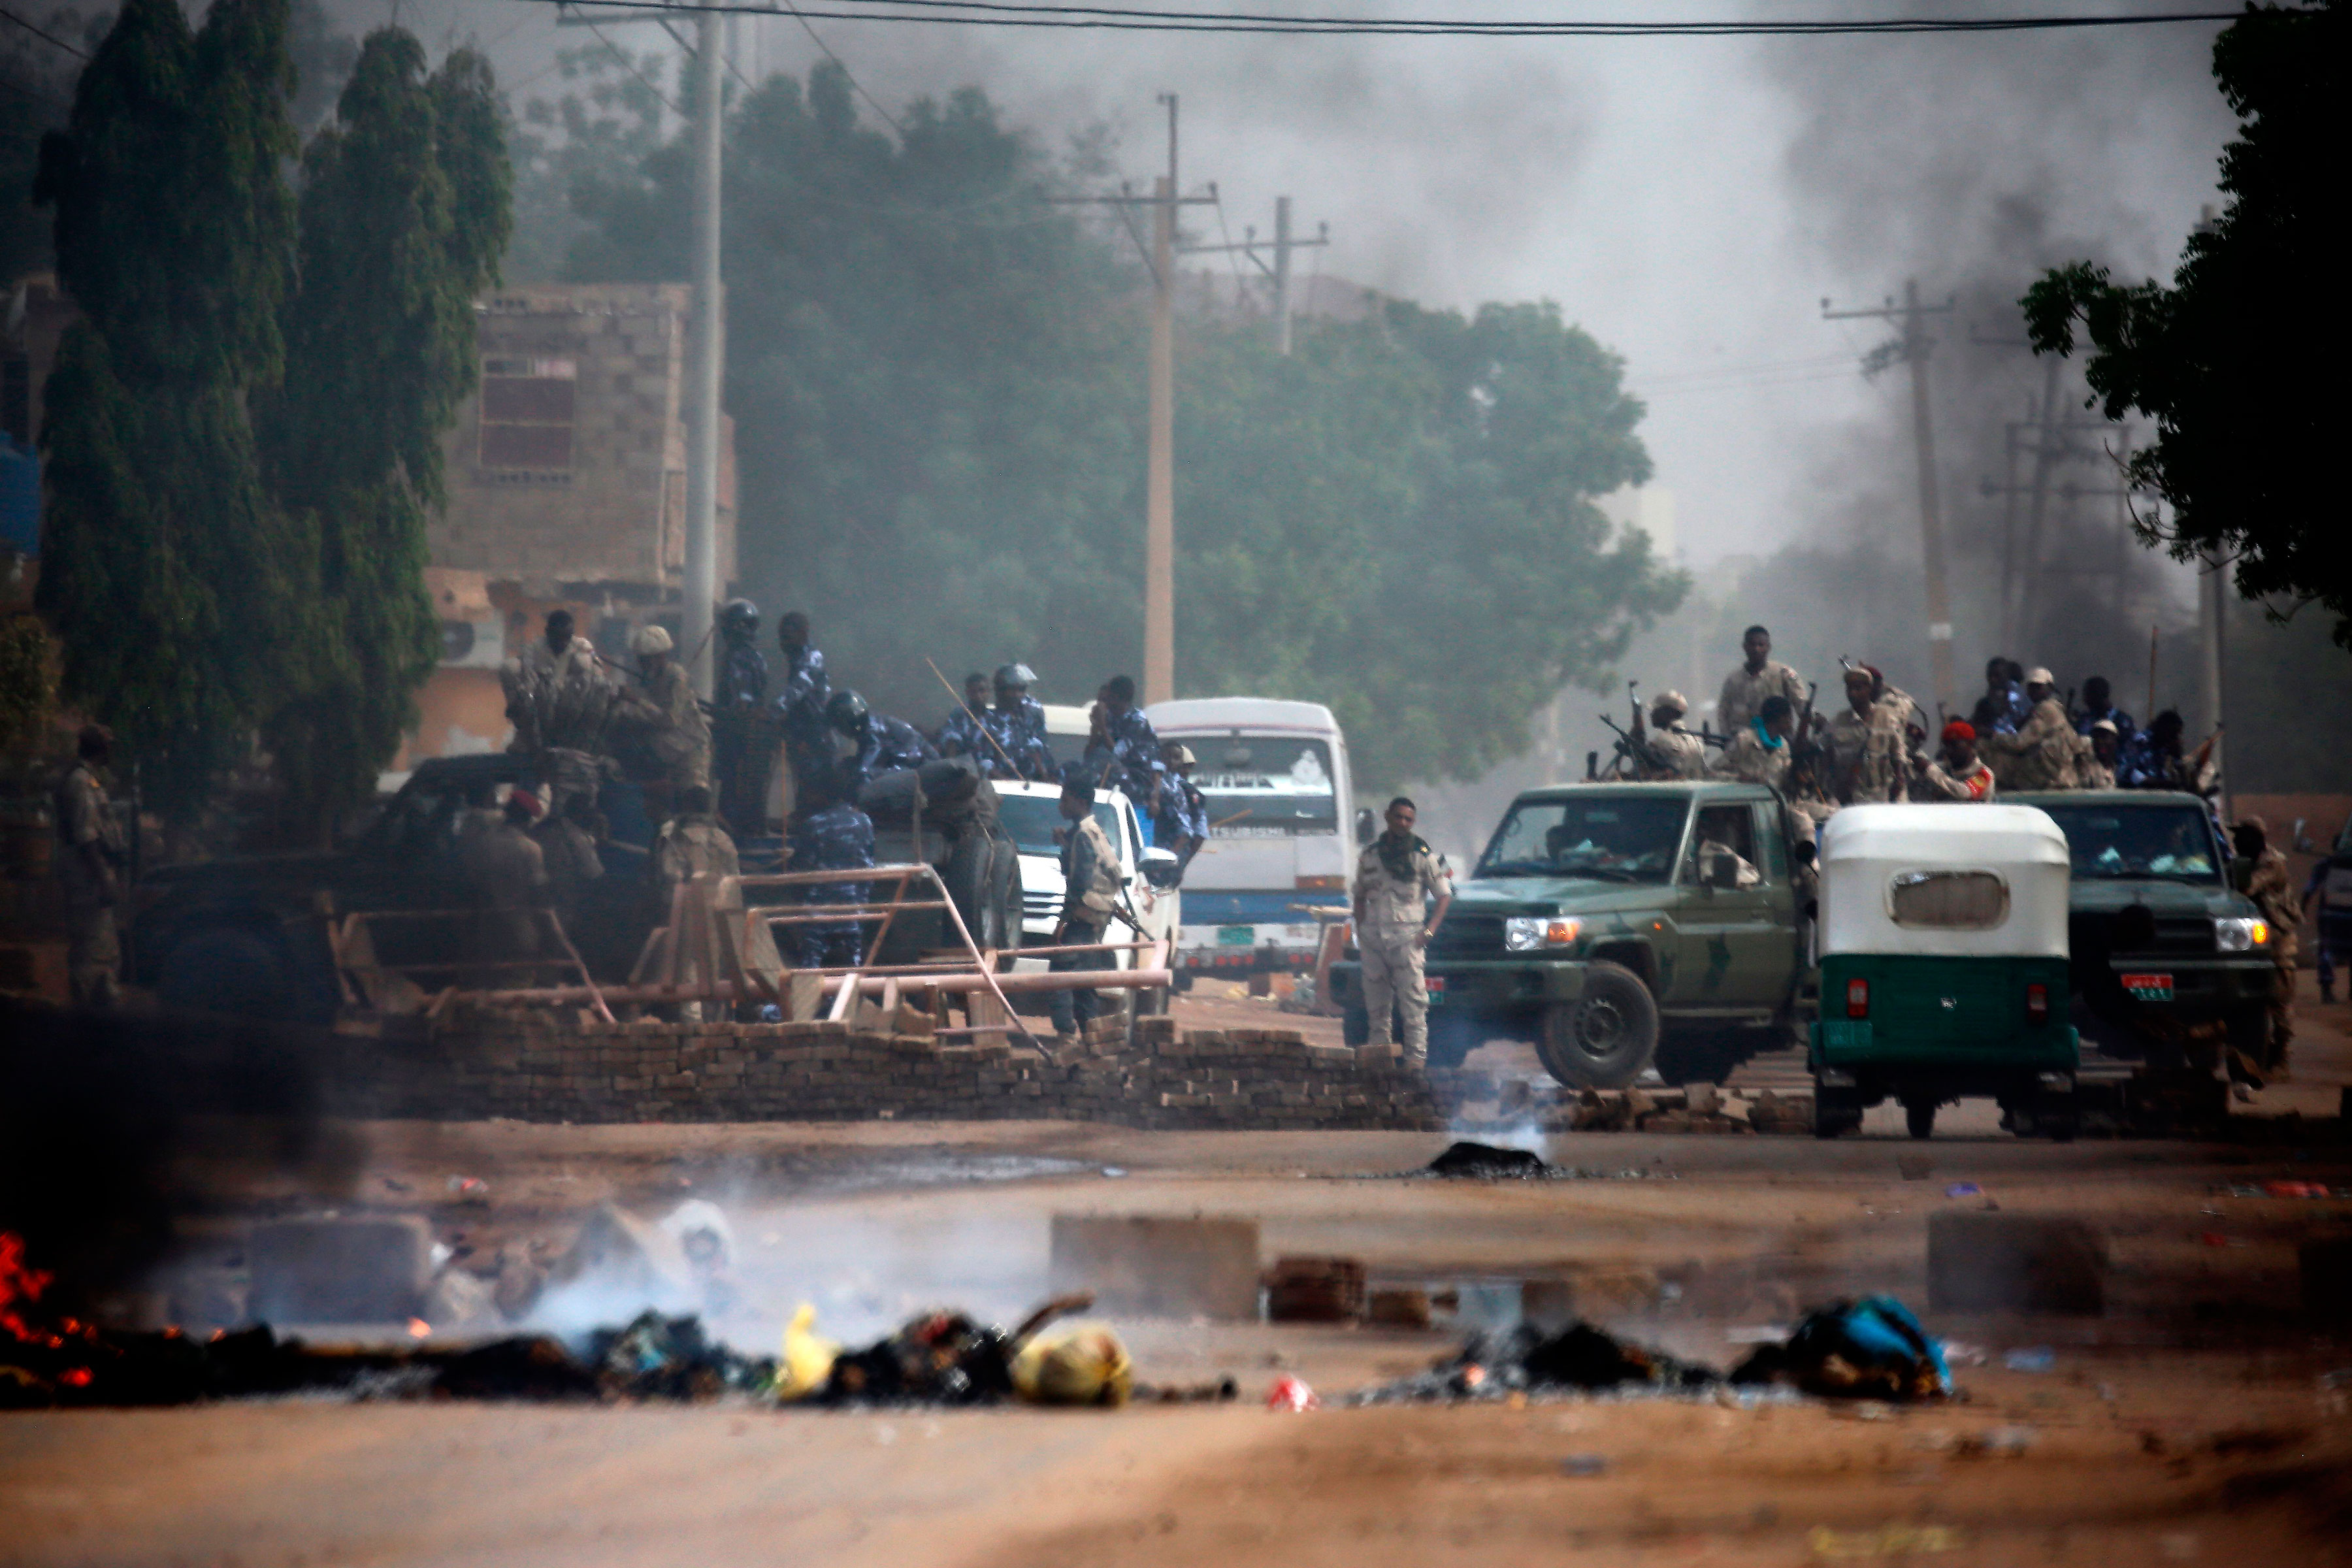 Sudanese forces are deployed around Khartoum's army headquarters as they try to disperse Khartoum's sit-in on June 3, 2019.